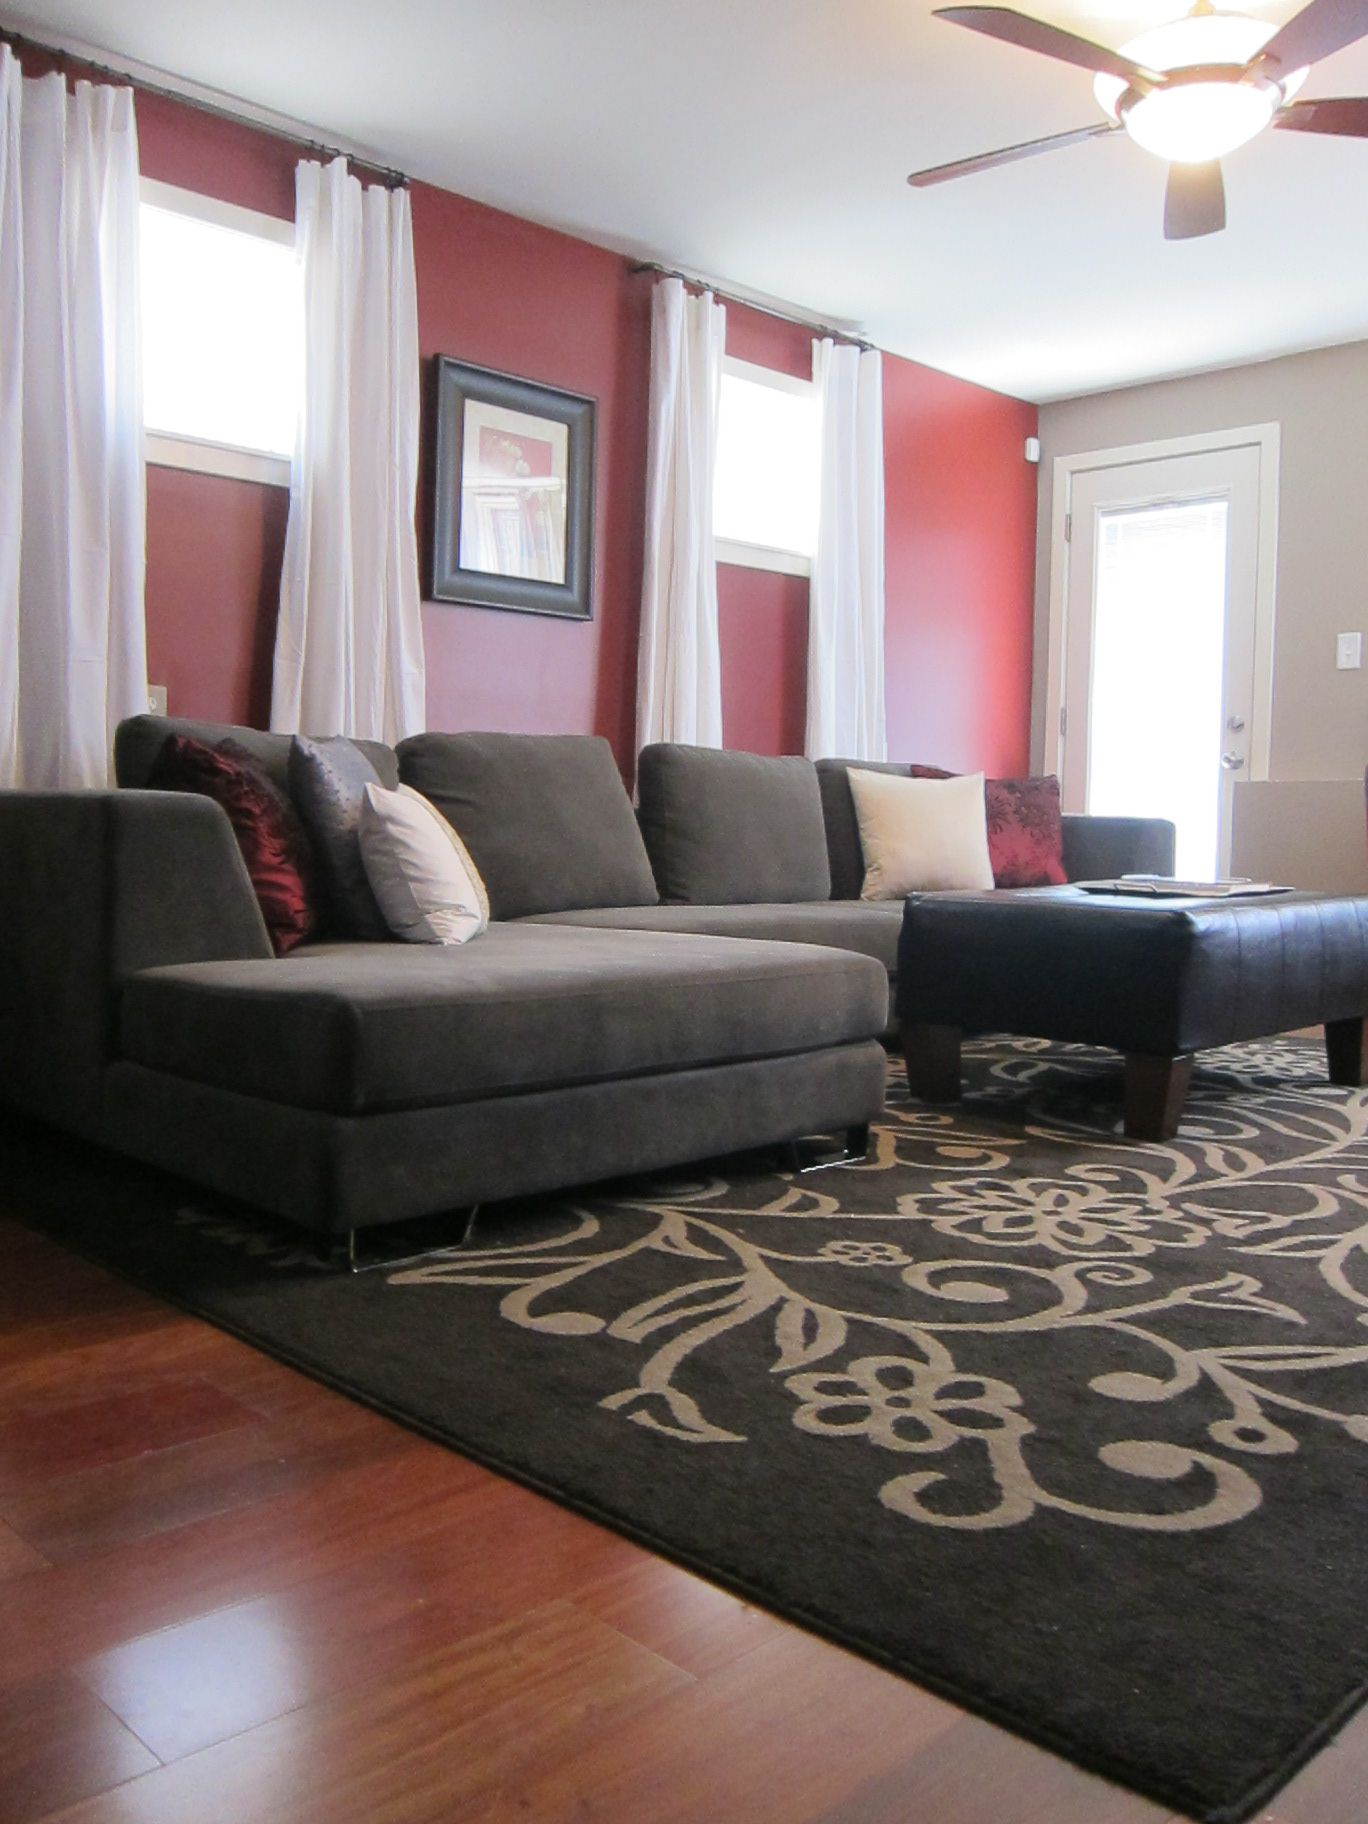 A philadelphia tv host 39 s home complete with a red accent - Home decorating ideas living room walls ...